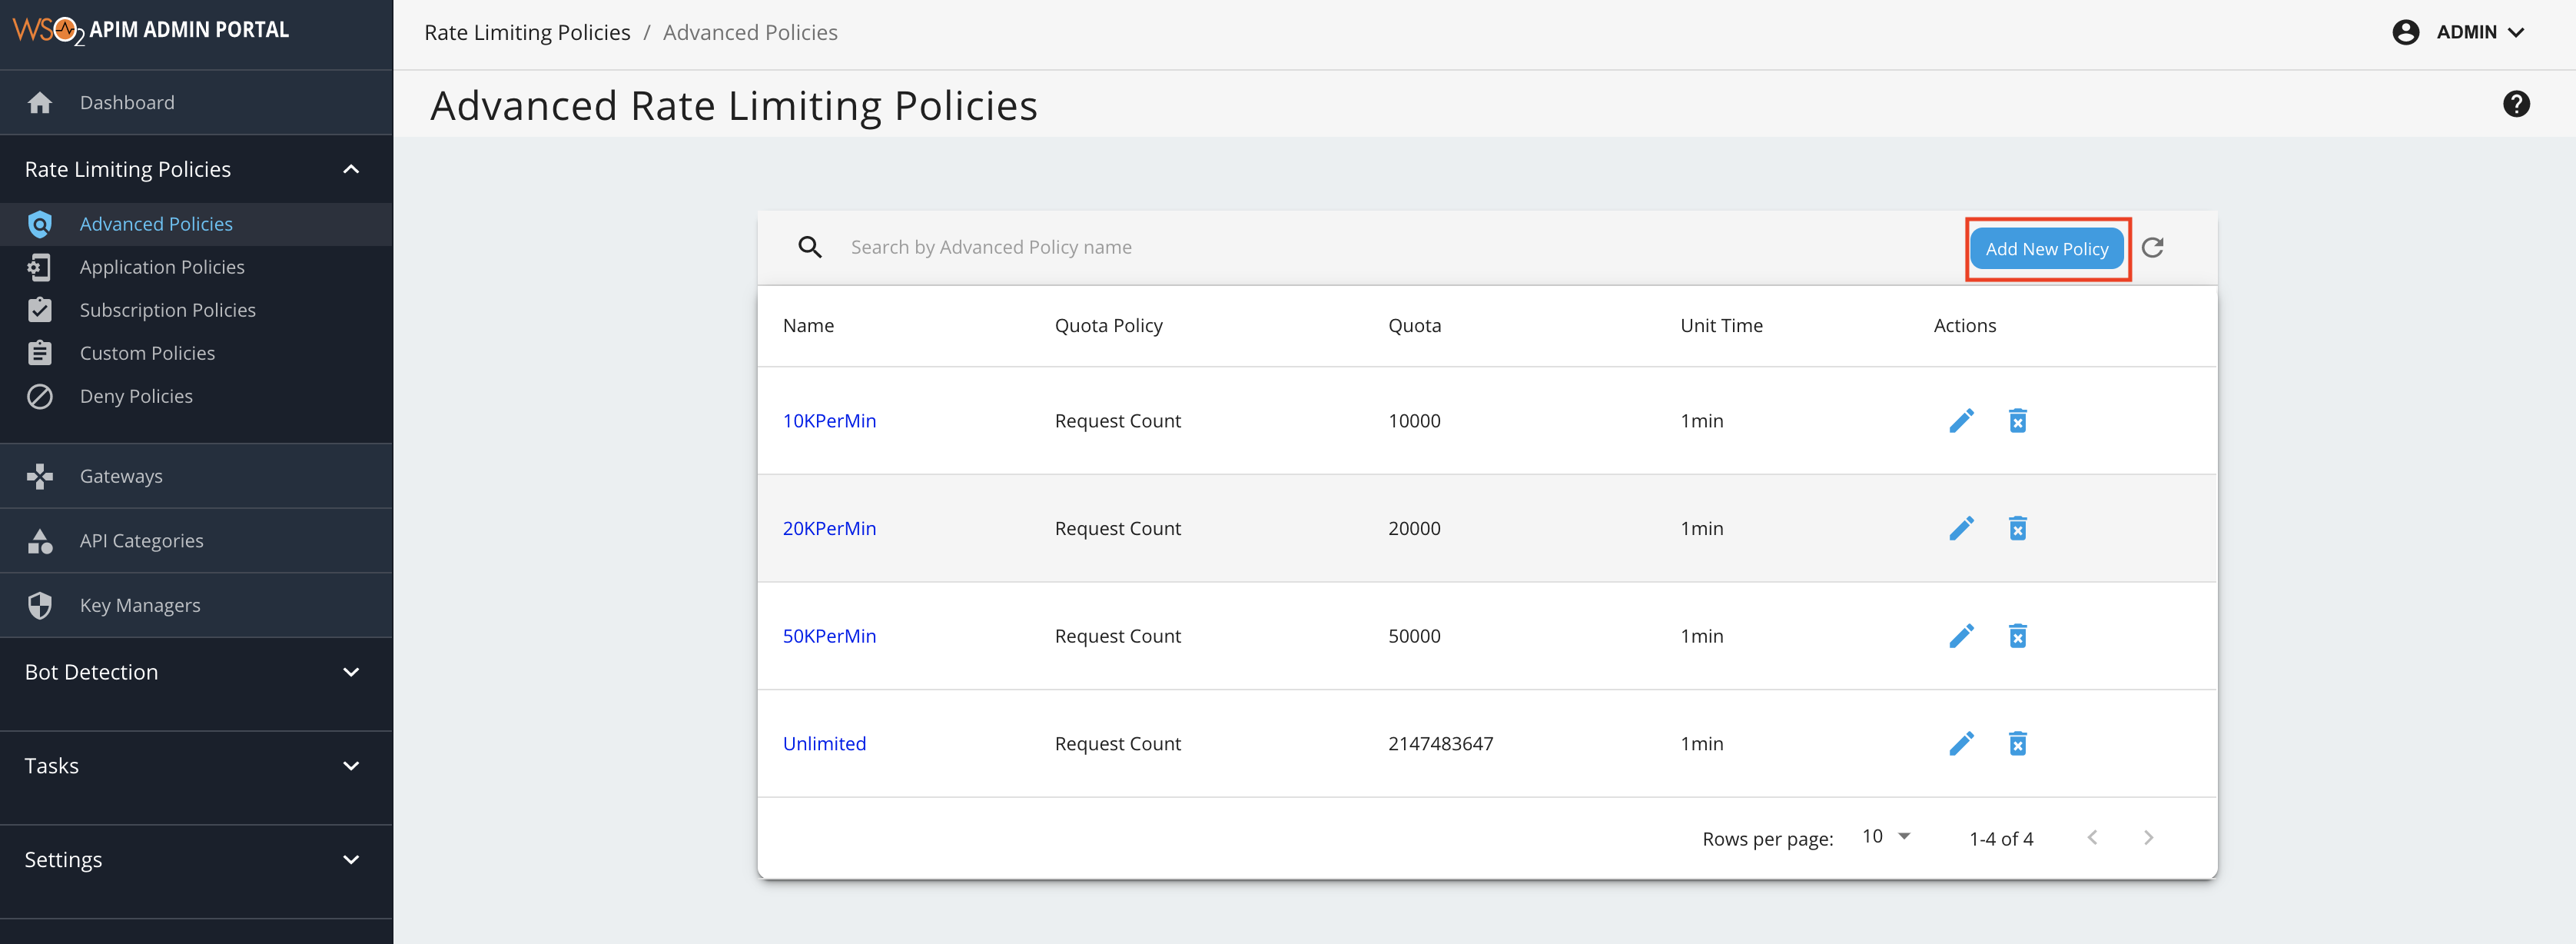 Add advanced policy page